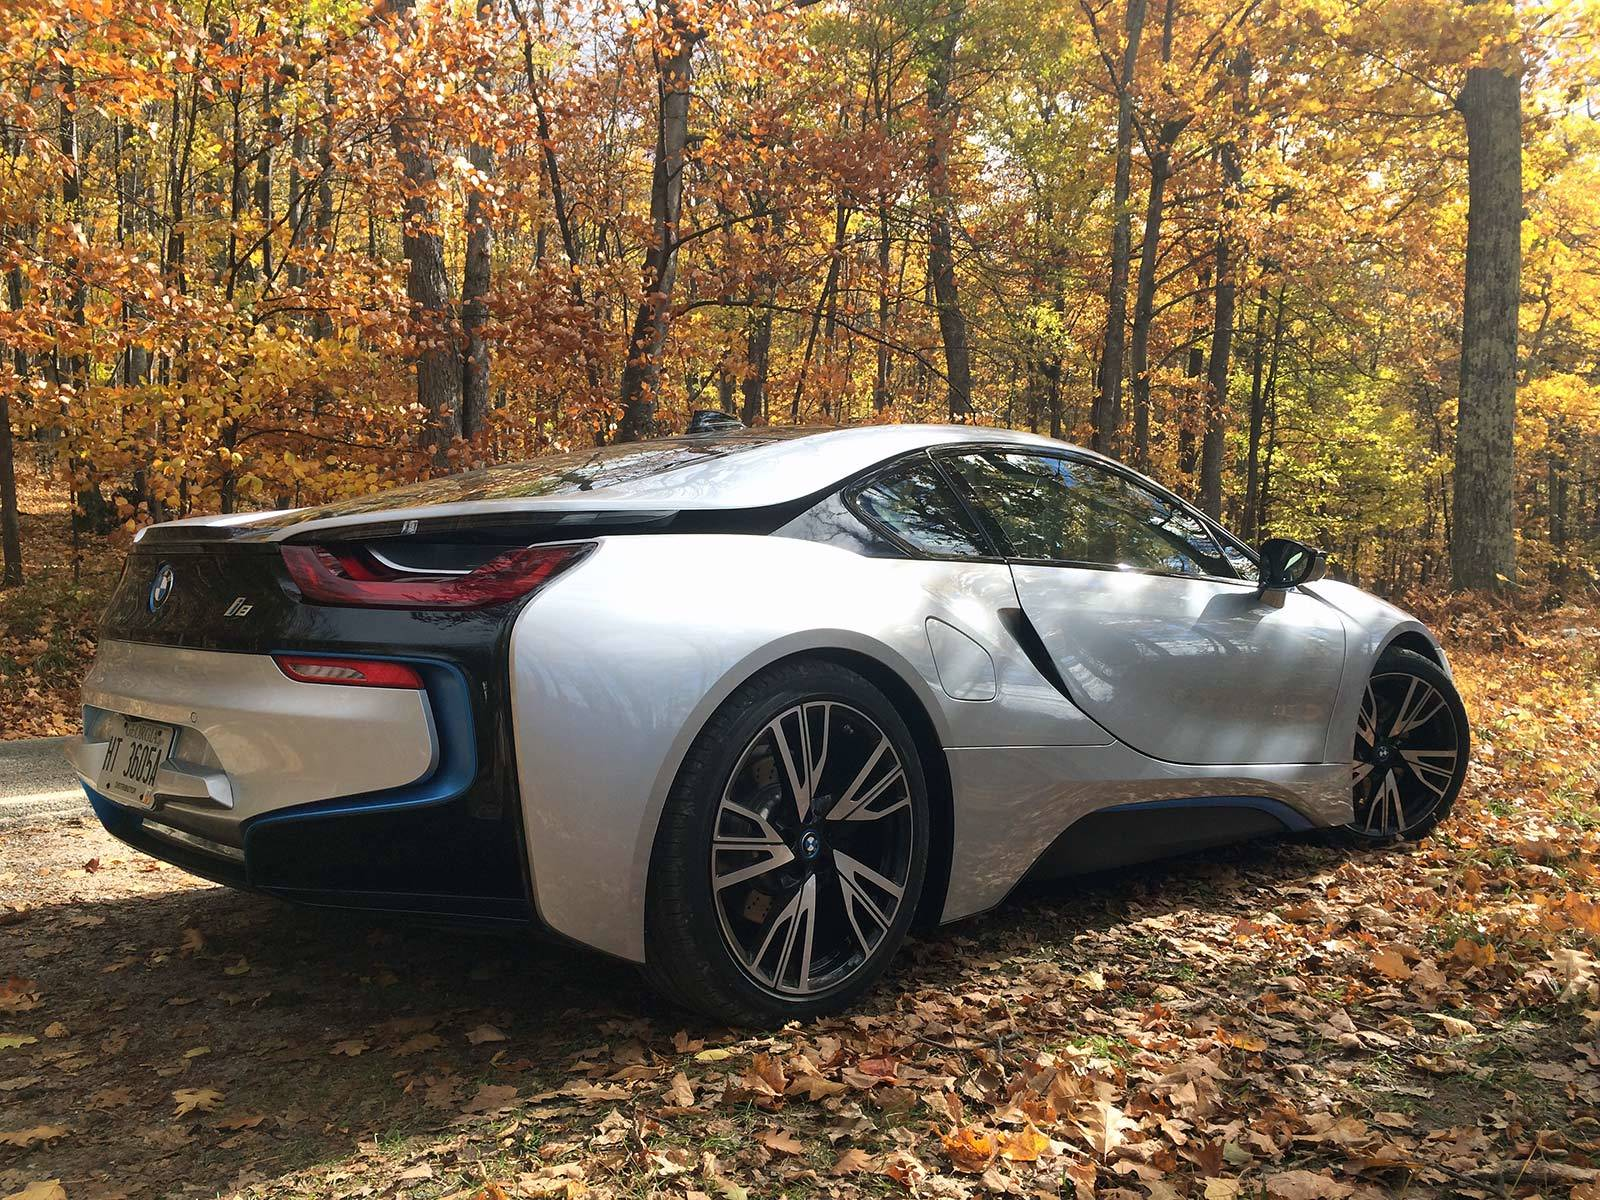 Https 2016 02 20 Daimler Exec Drive Electric Gmc Pickup Truck Suburban Undercover Battery Kill Switch Wiring Ebay 2015 Bmw I8 Tunnel Of Trees 1